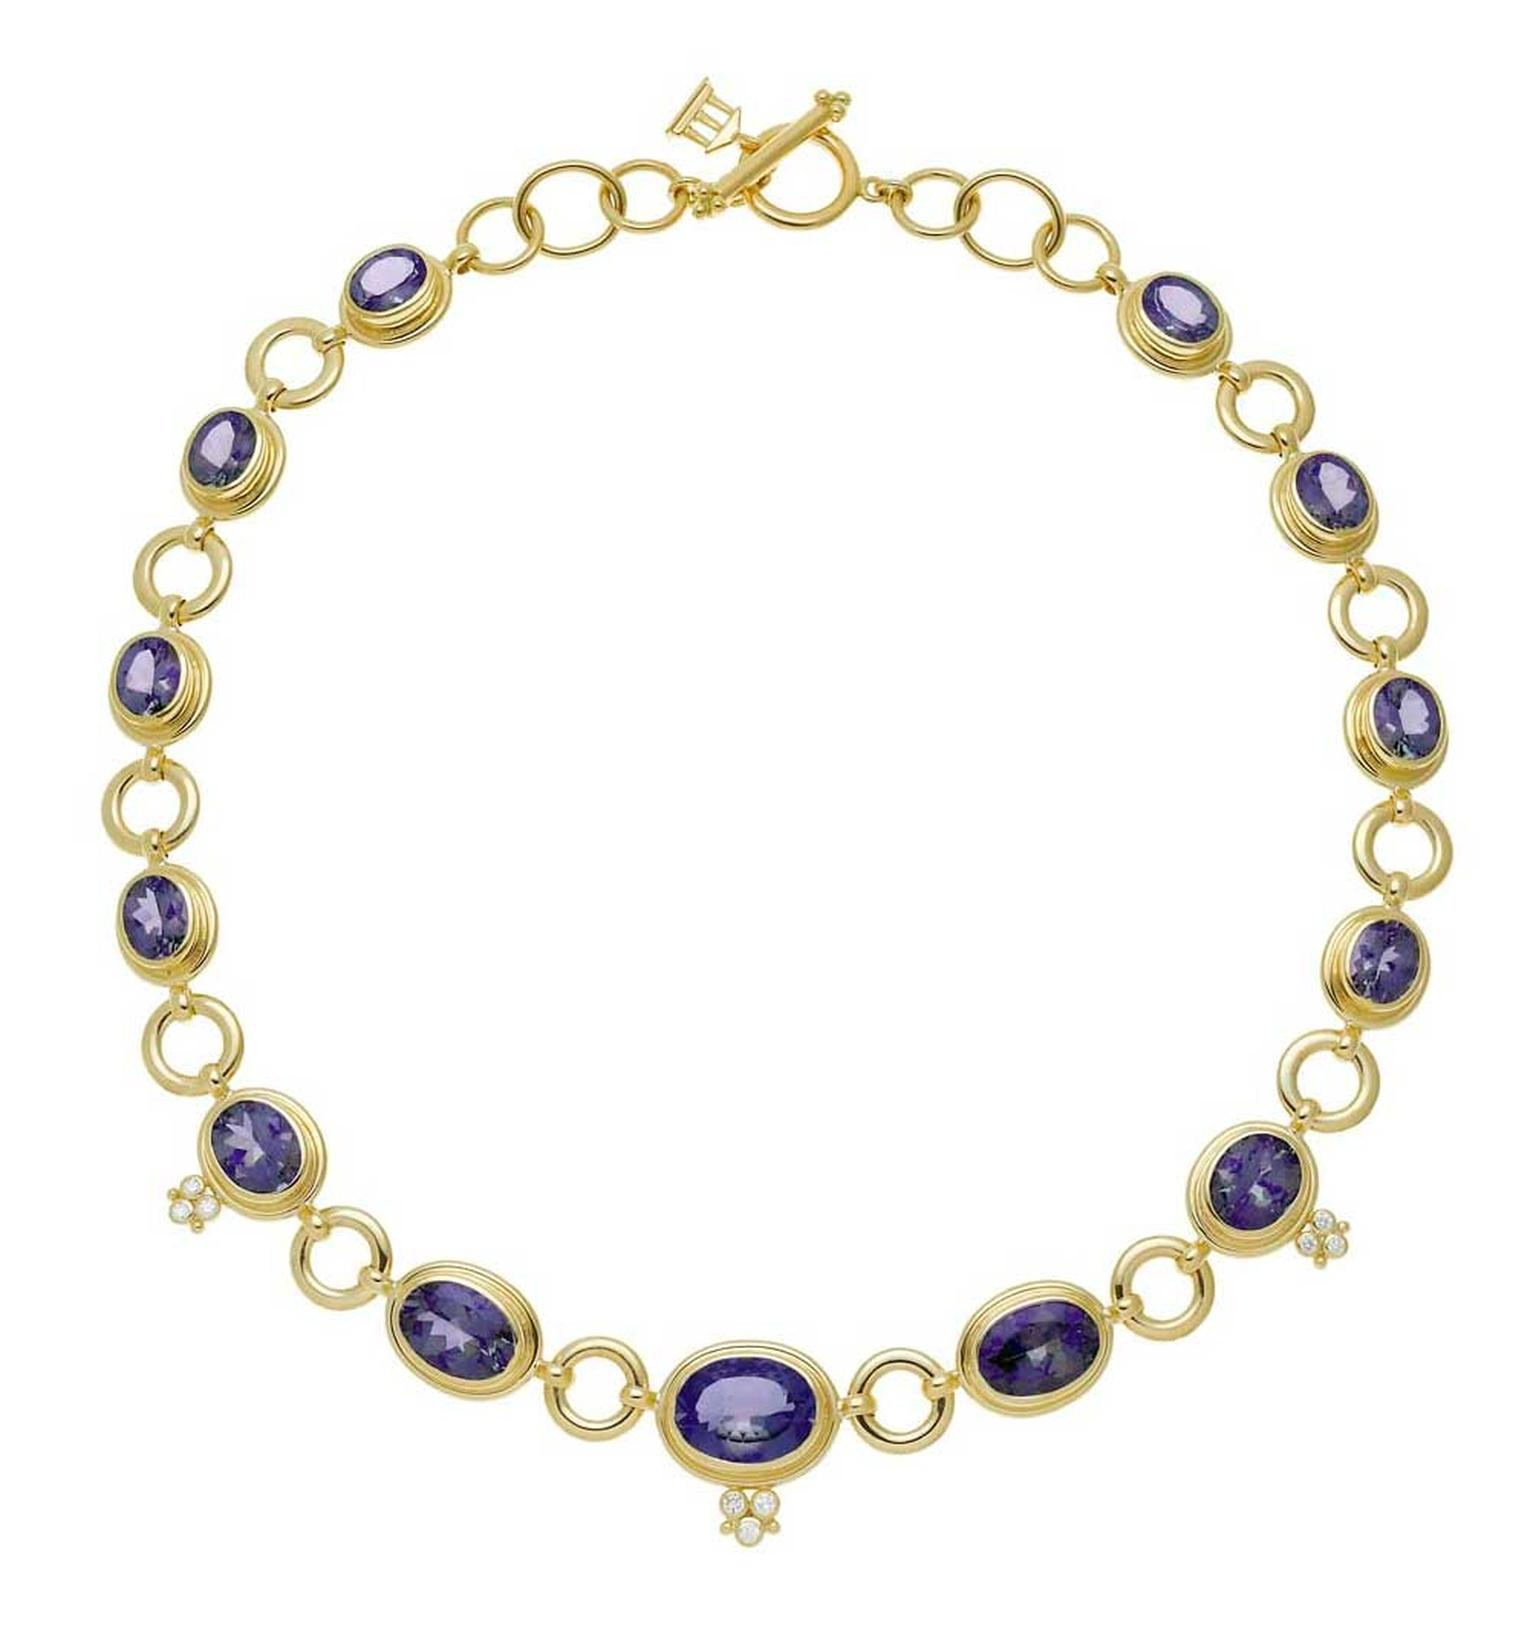 Temple St. Clair gold Classic necklace featuring diamonds and faceted tanzanite.